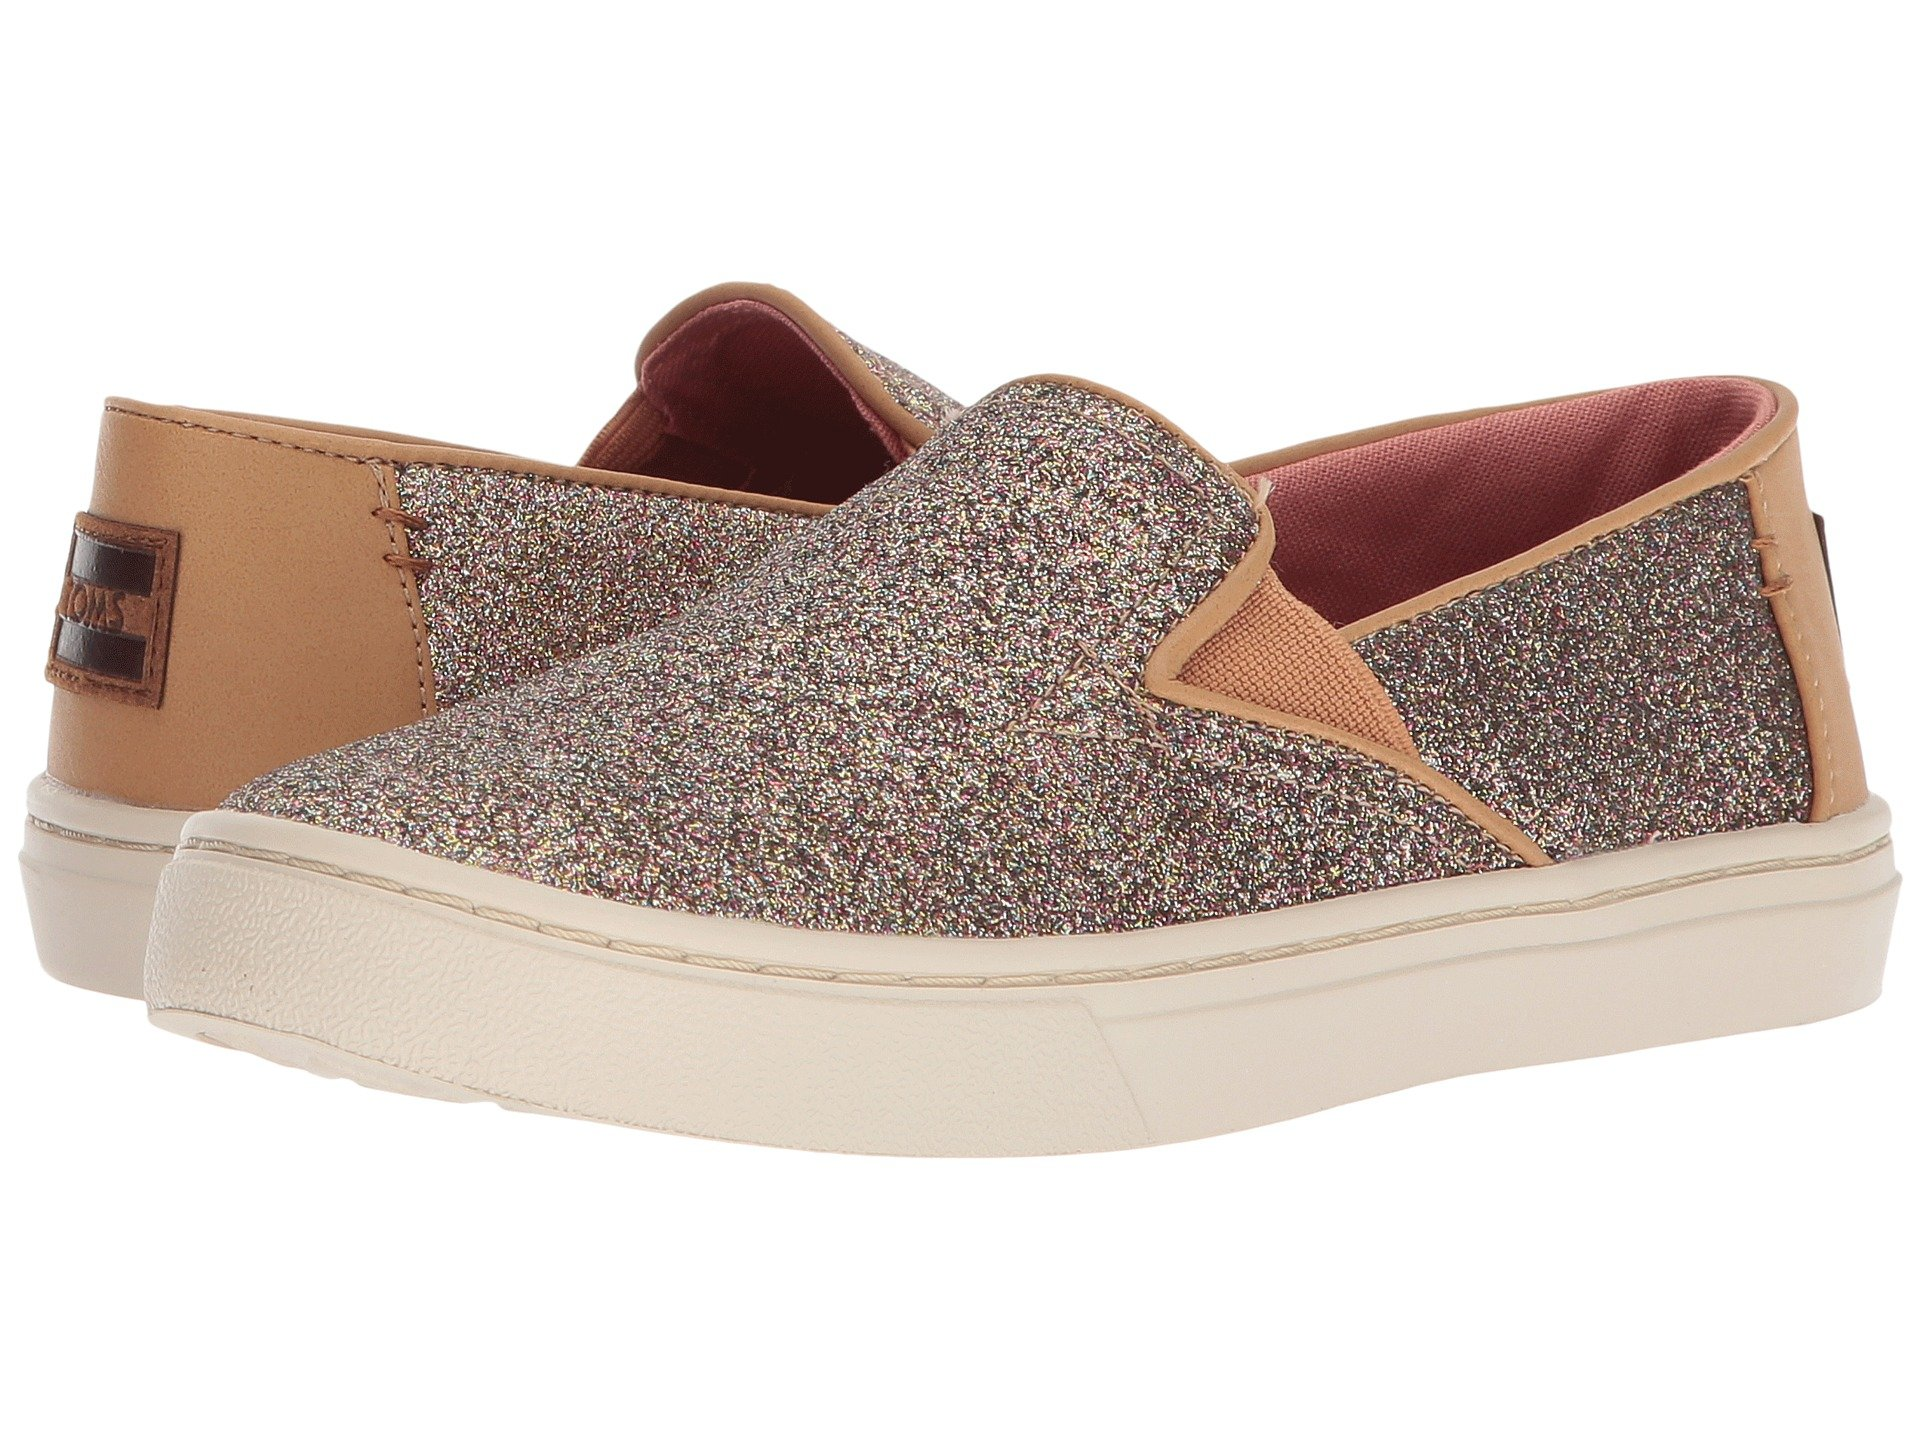 TOMS Shoes Girls